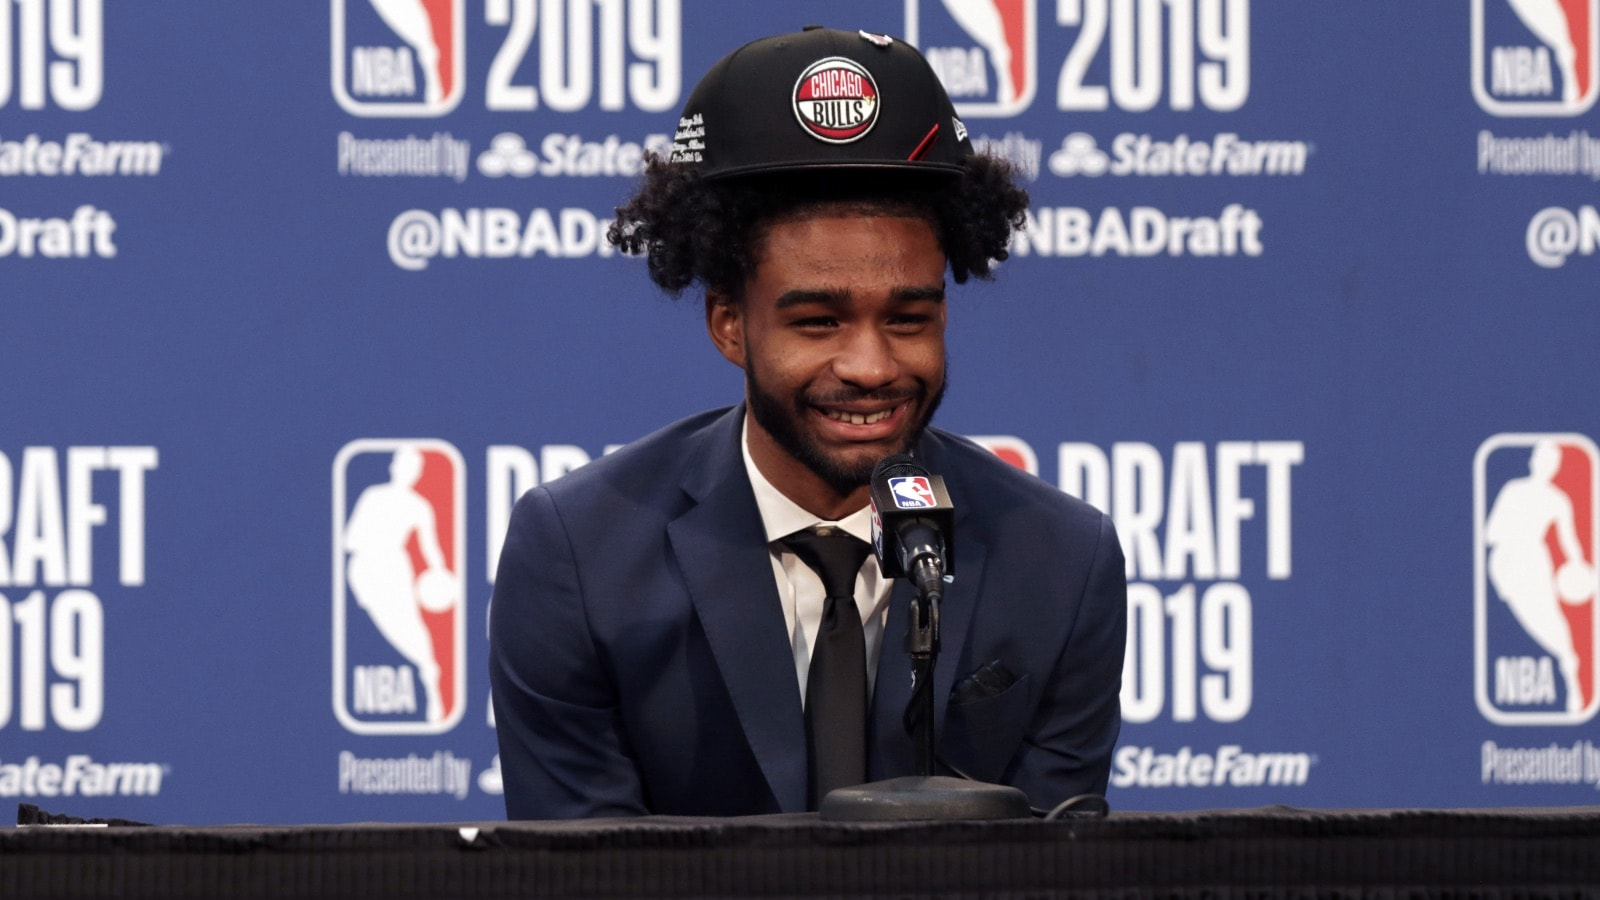 Coby White meets with the media following being drafted